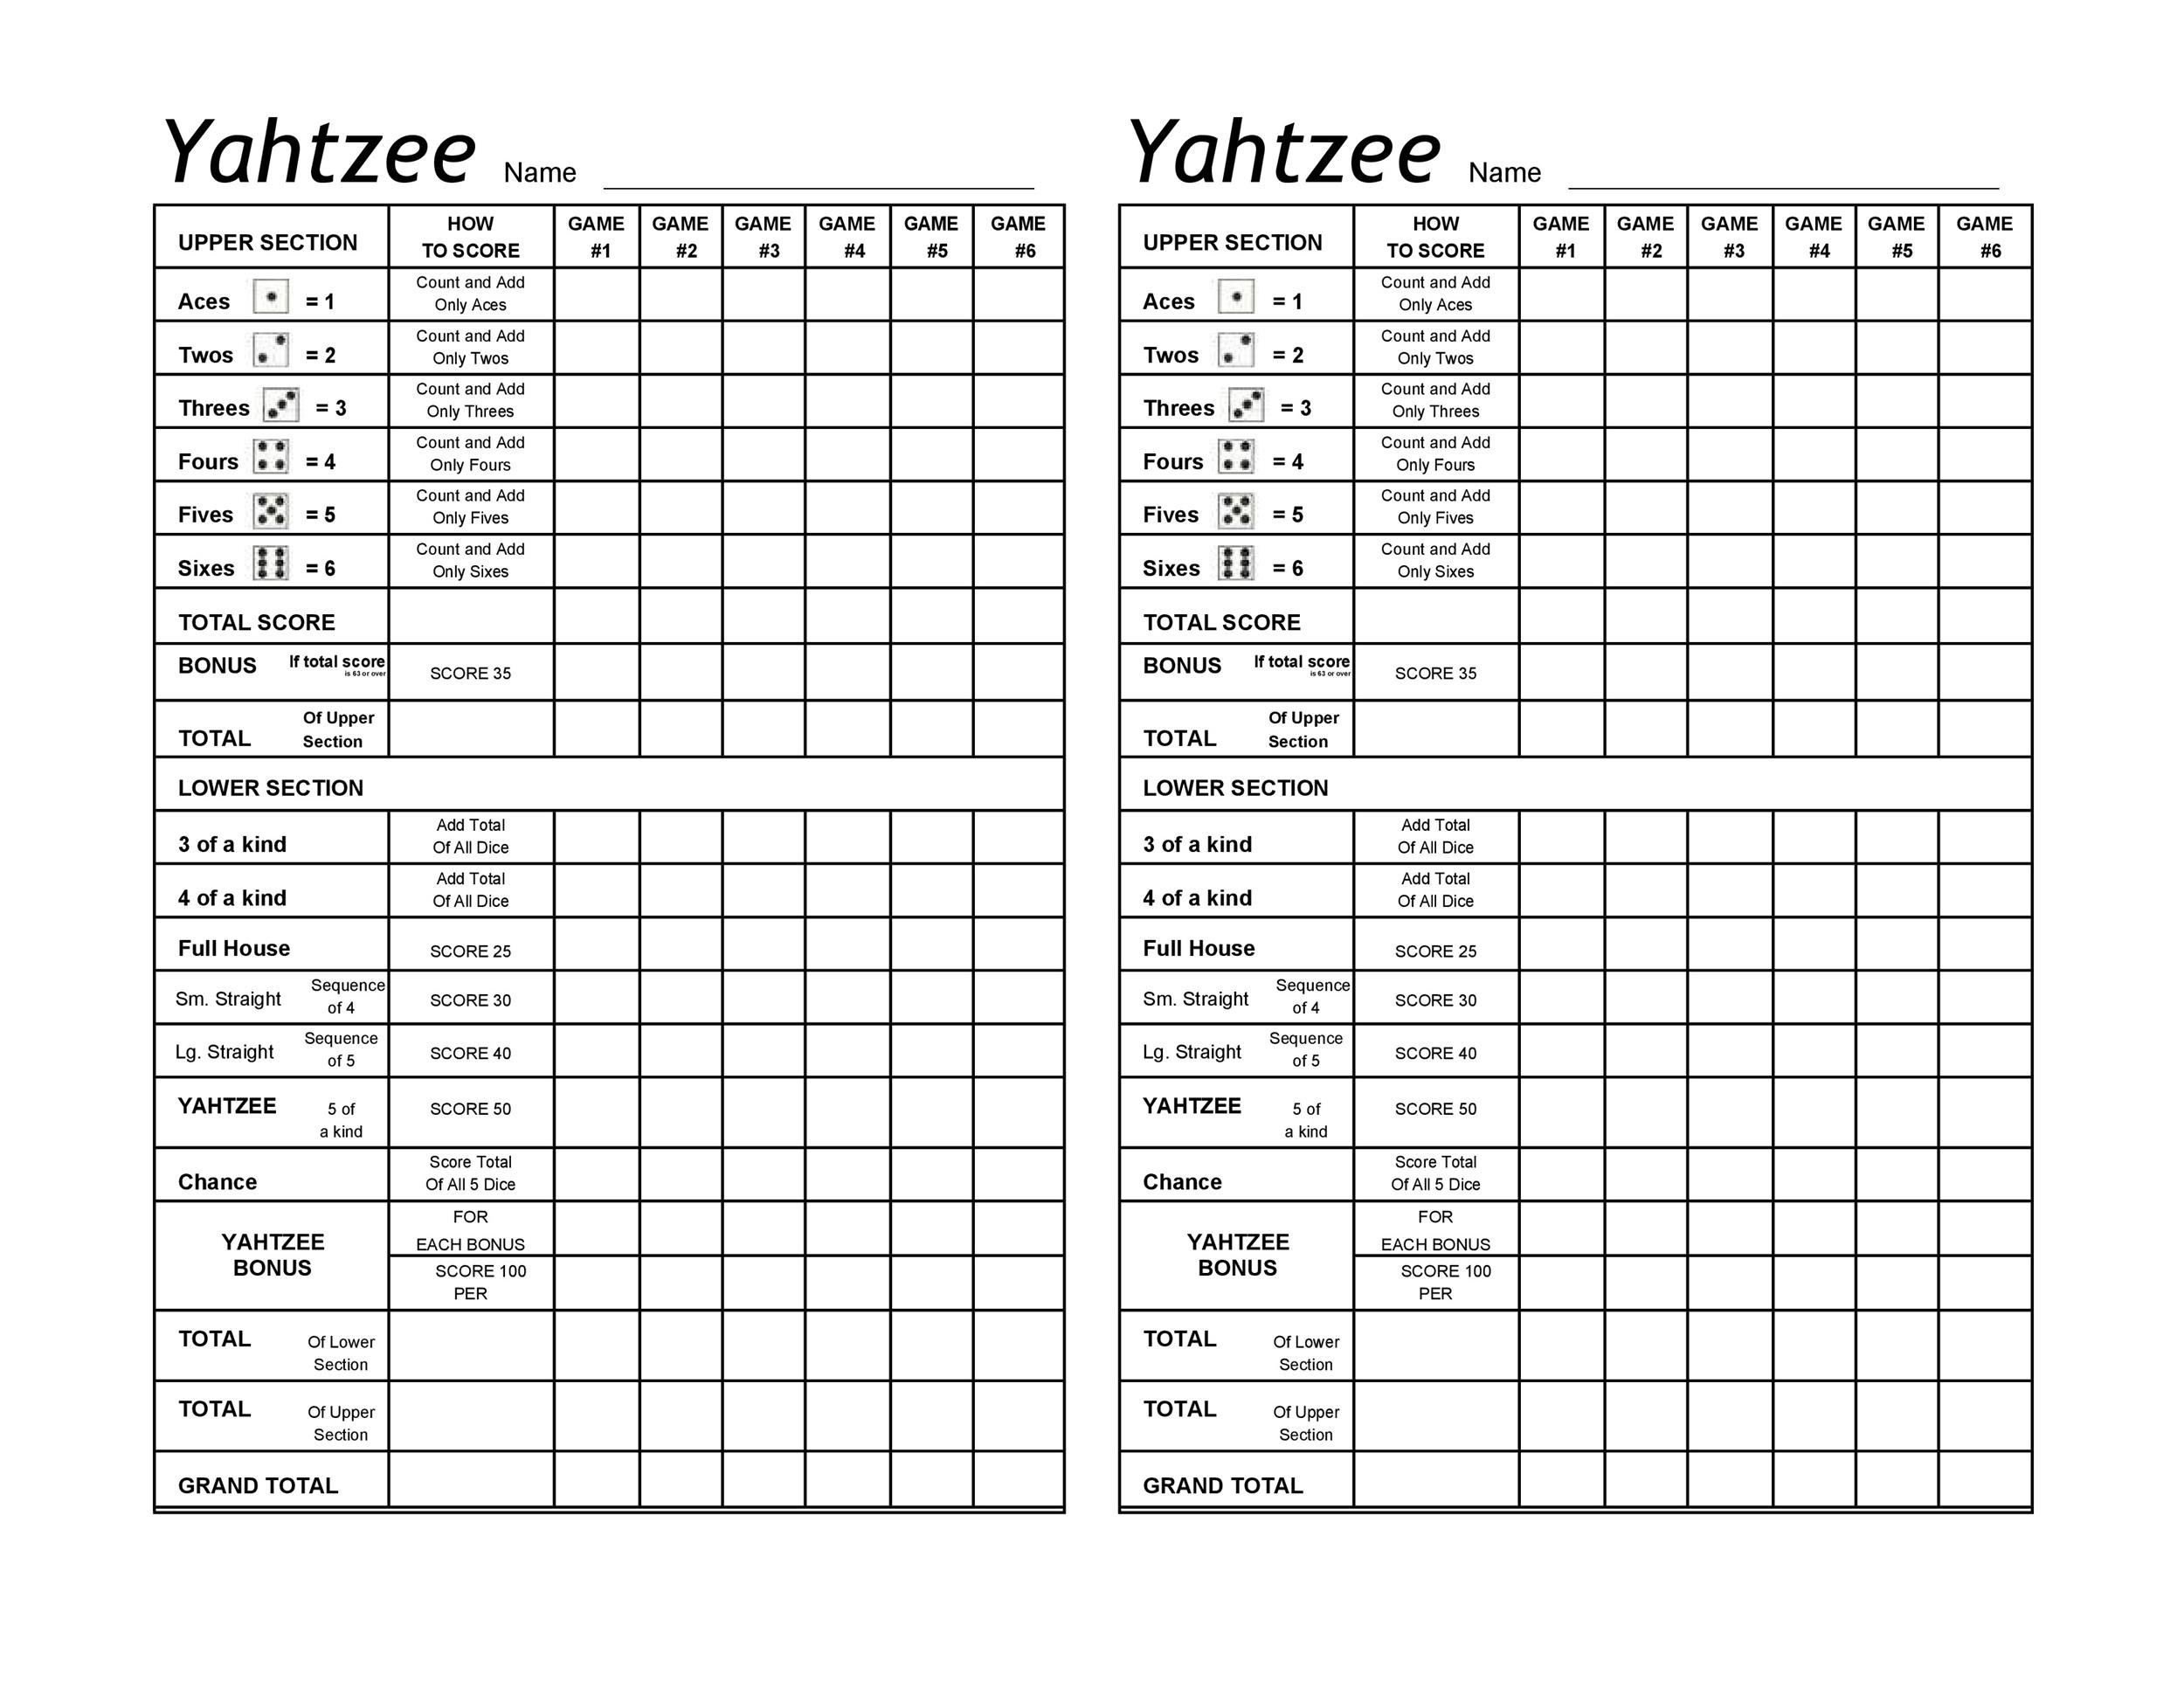 Agile image pertaining to printable triple yahtzee score sheets pdf